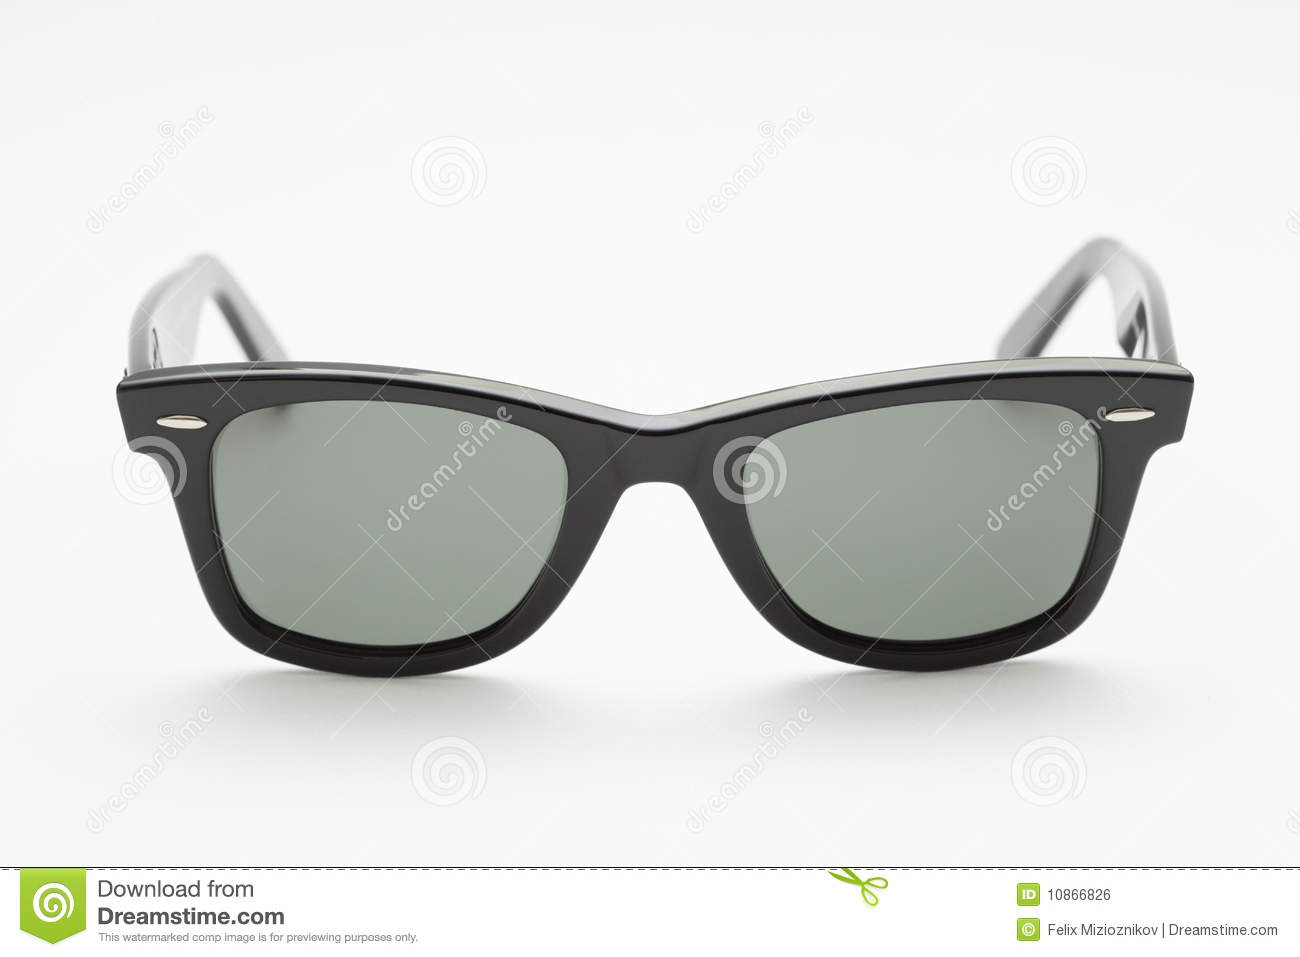 6f703936743f Fashionable pair of sunglasses isolated on a white background